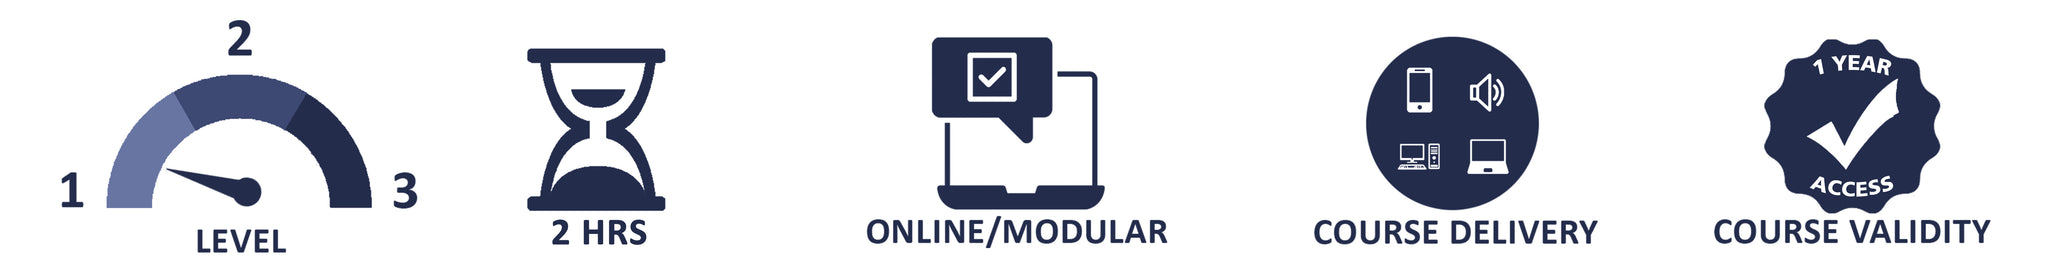 Care Certificate Standard 11 + Train the Trainer + Trainer Pack - Online CPD Course - The Mandatory Training Group UK -